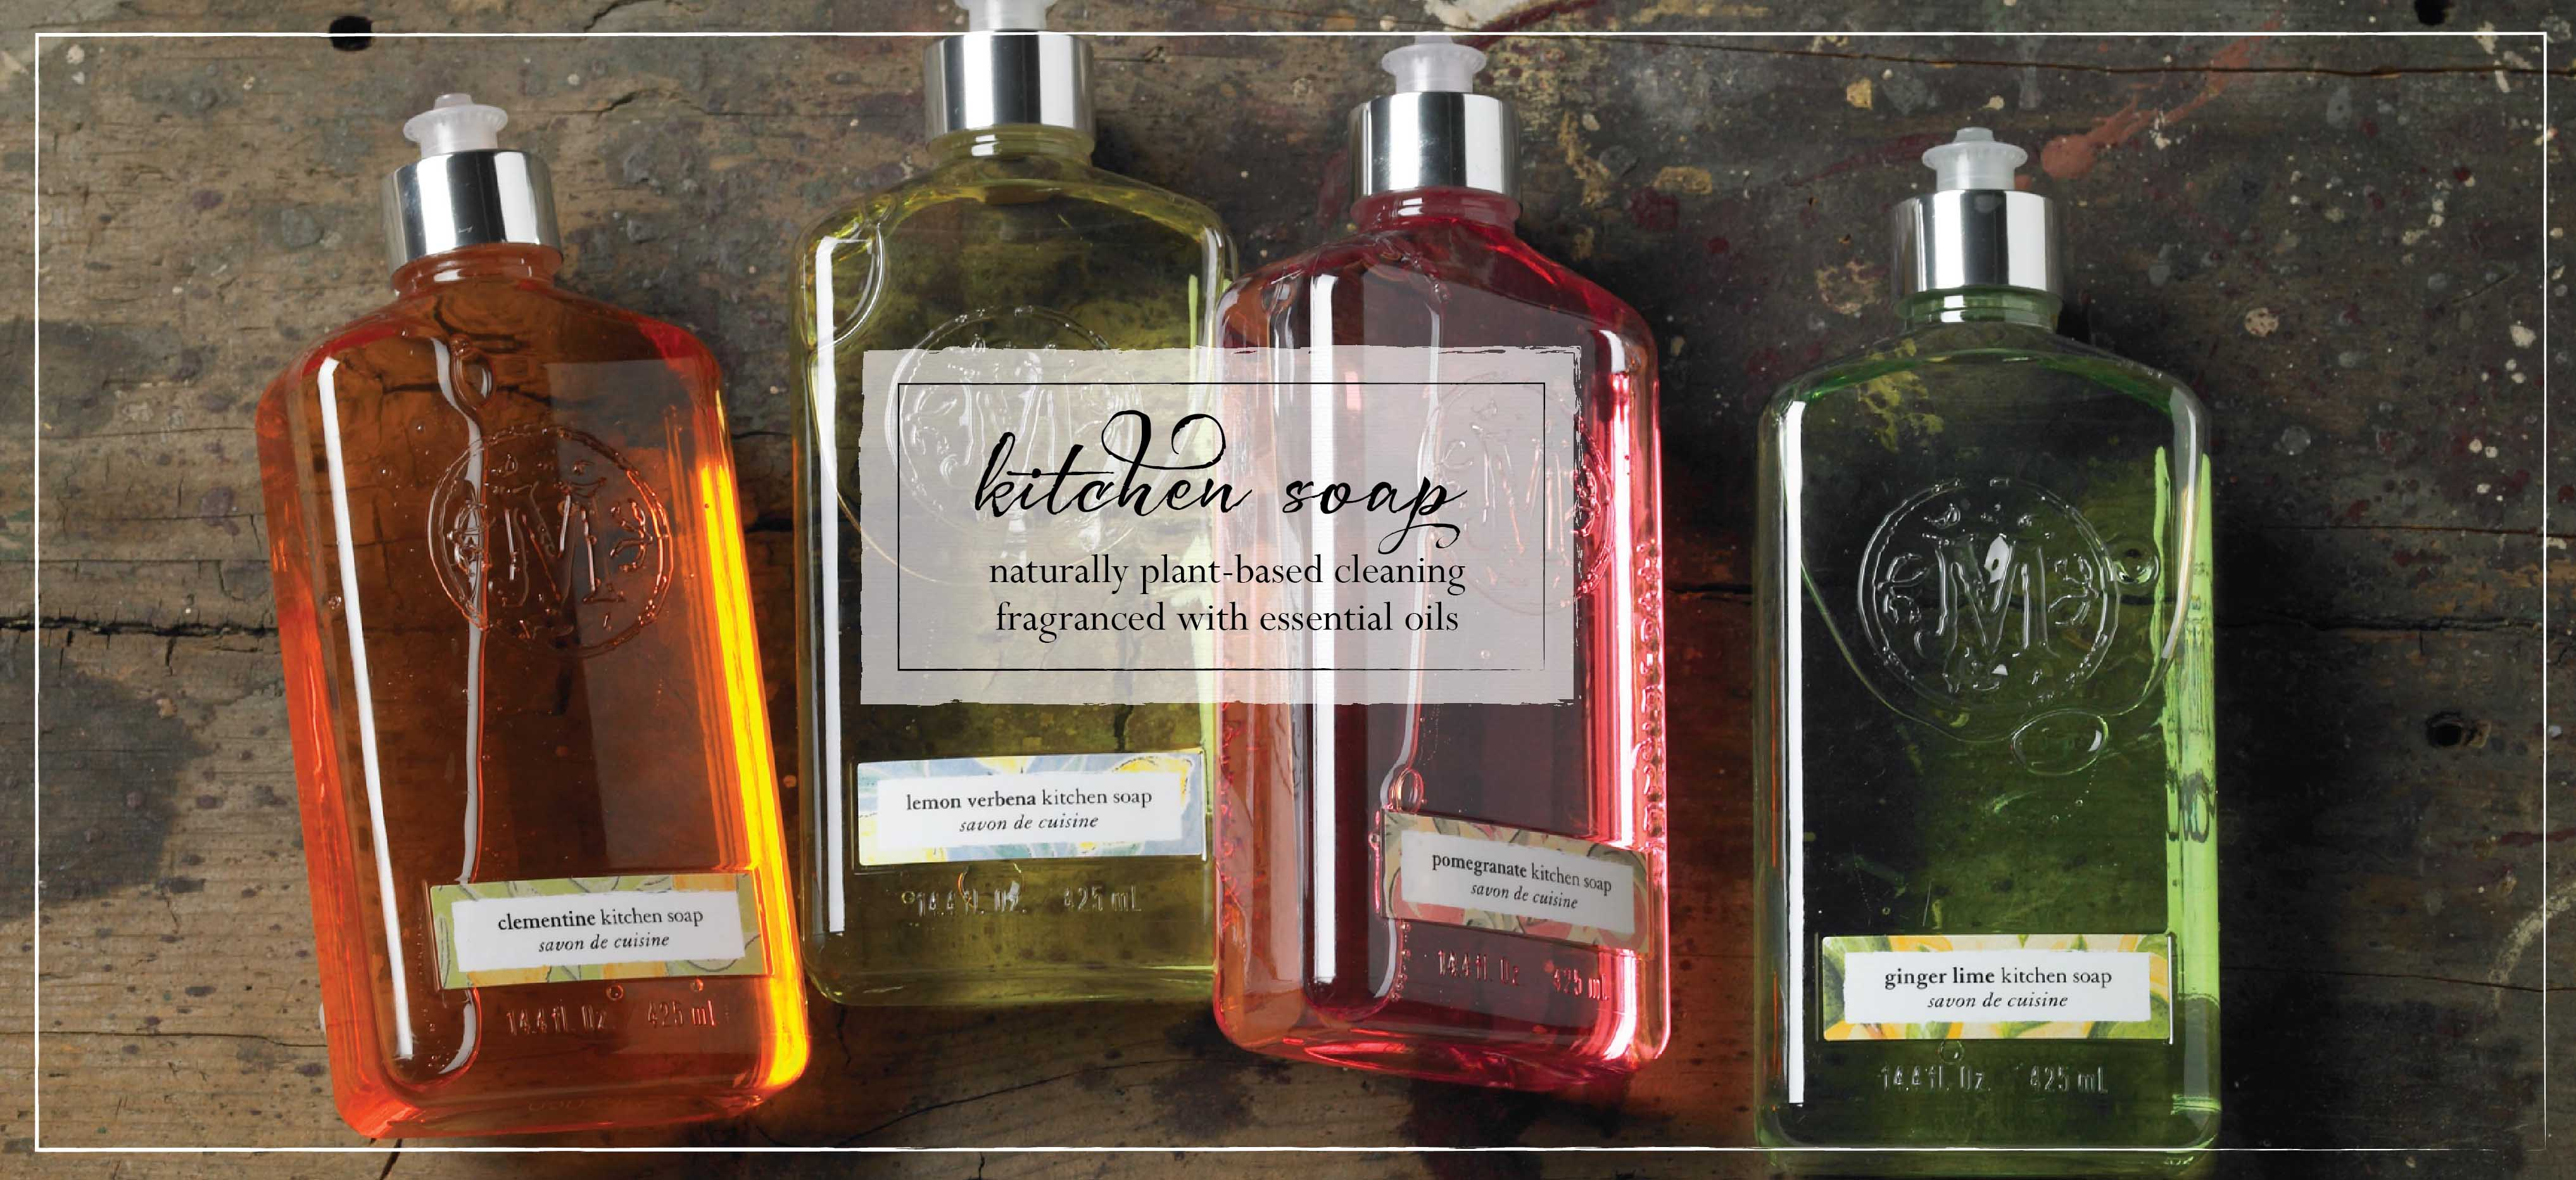 Genial Kitchen Soap Web Product